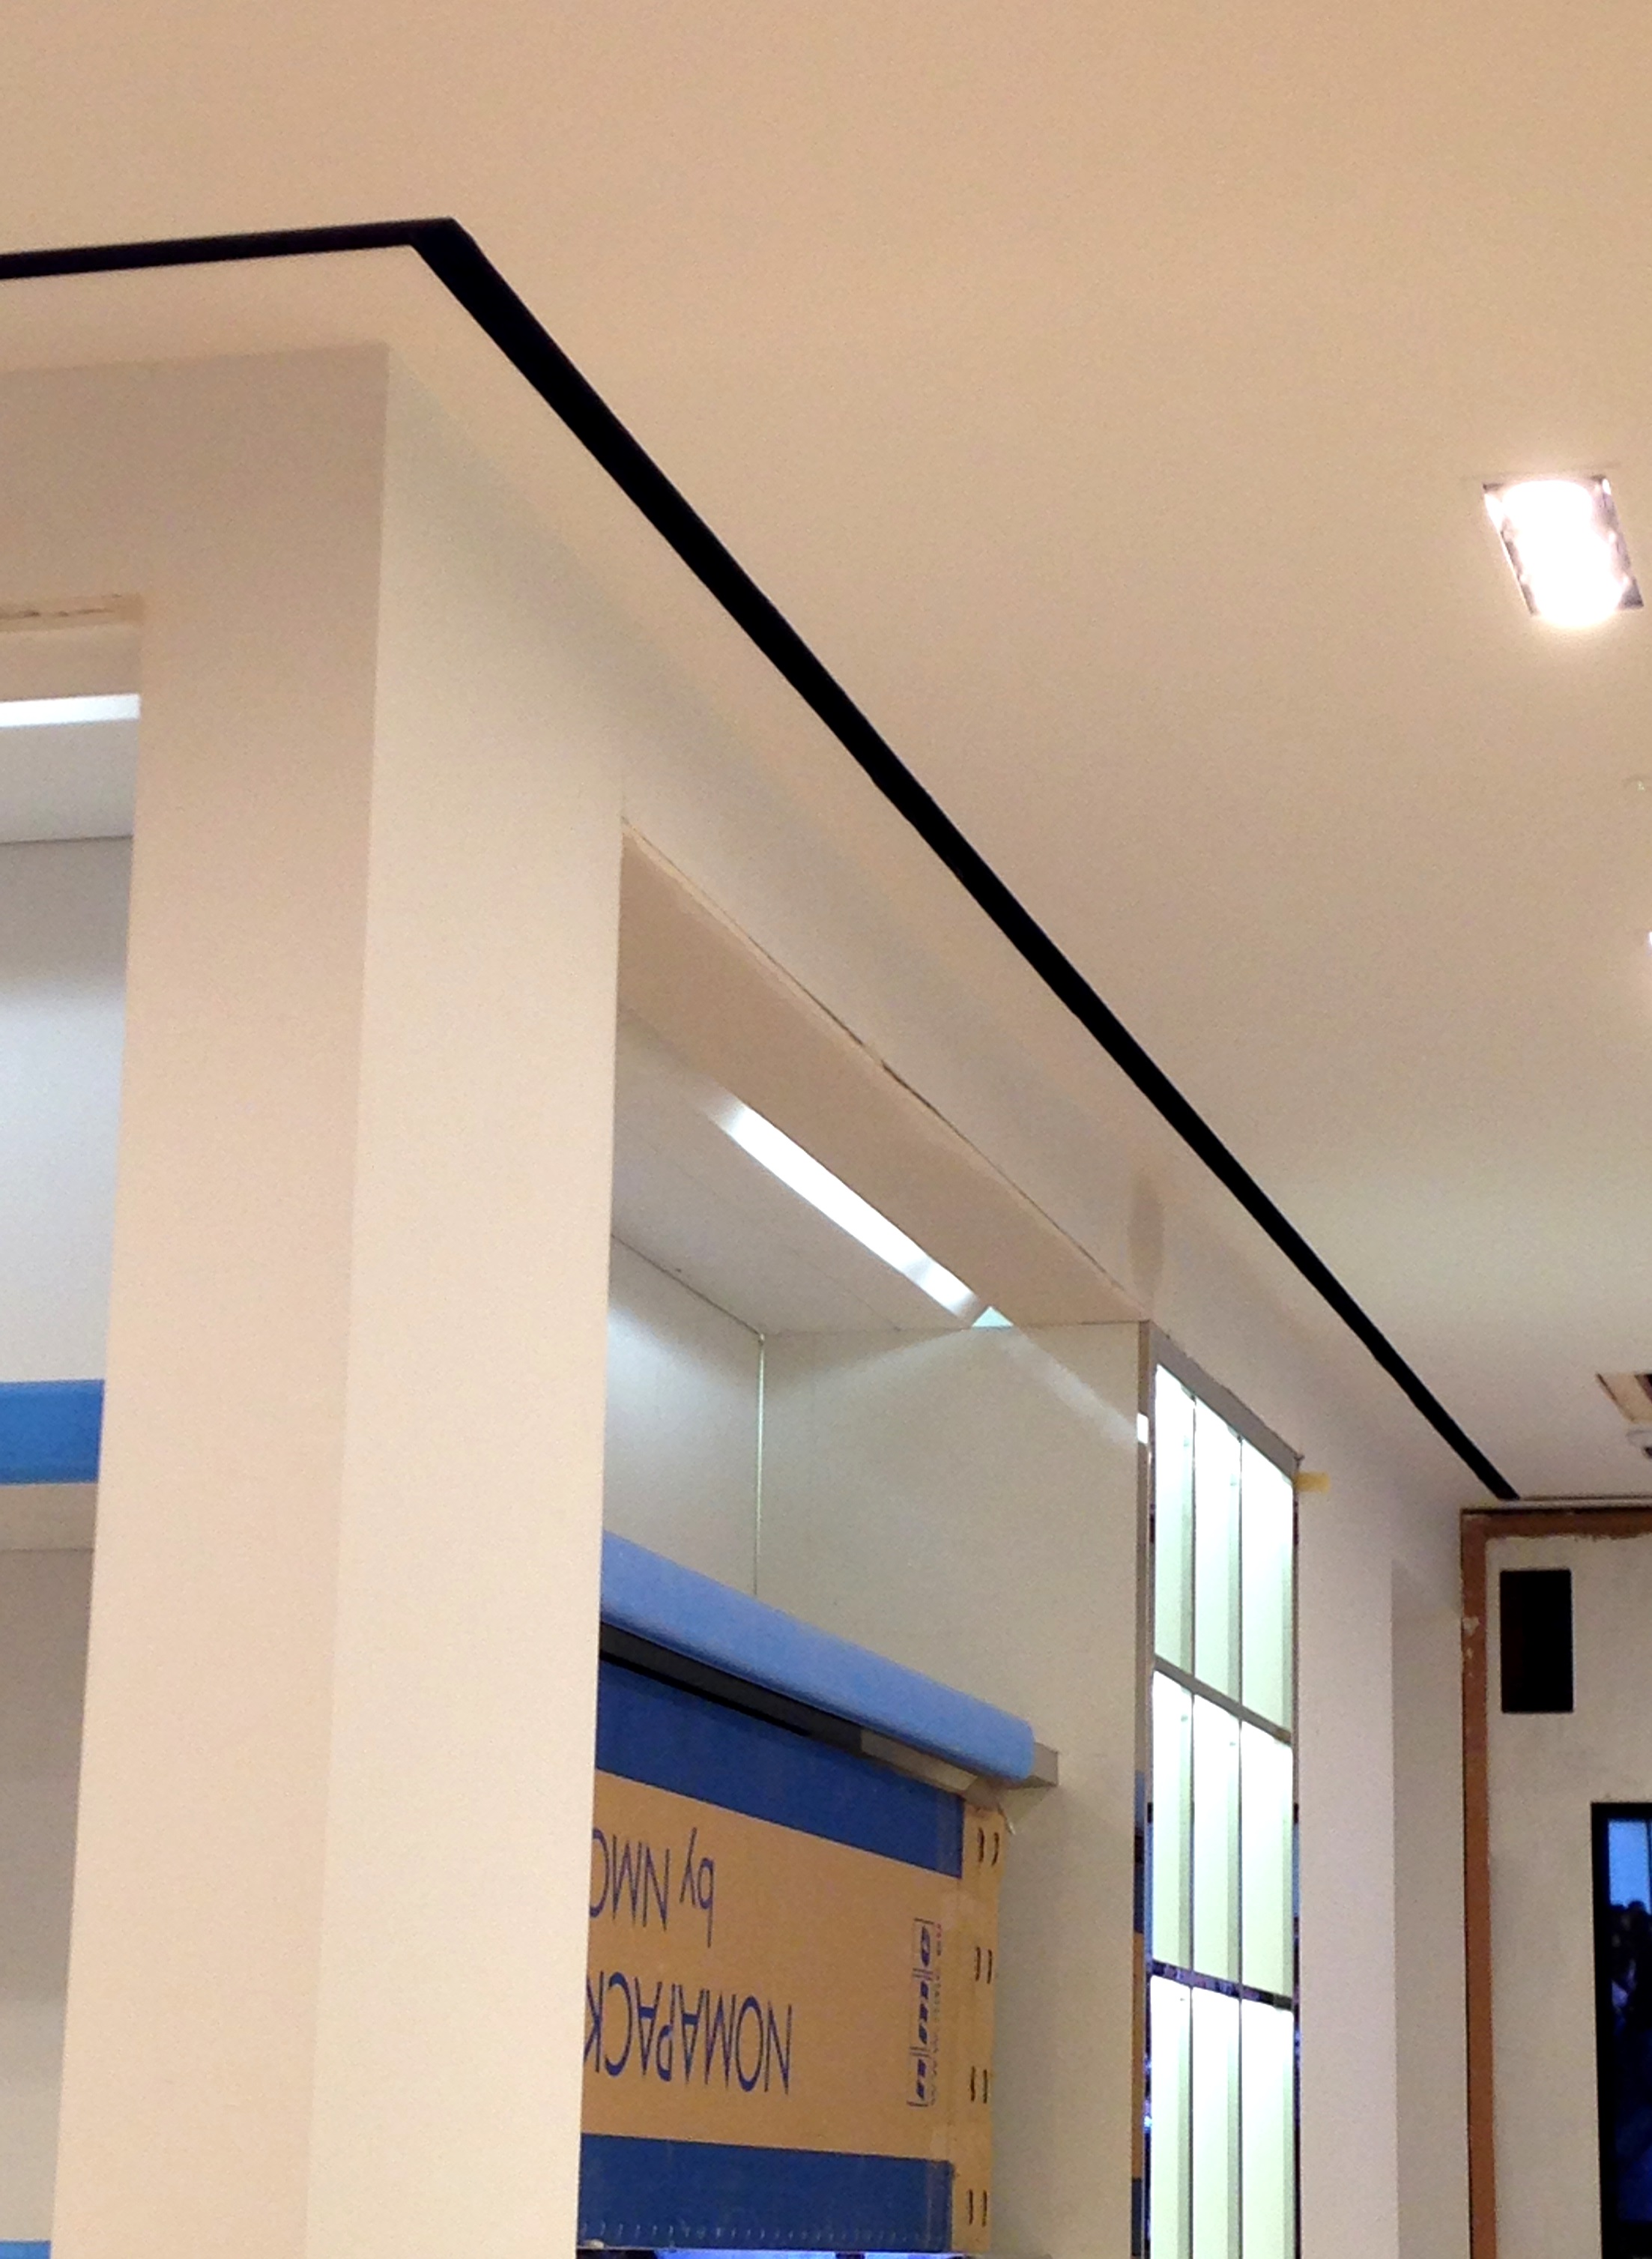 FlowBar can wrap around corners and outline the shape of a room.